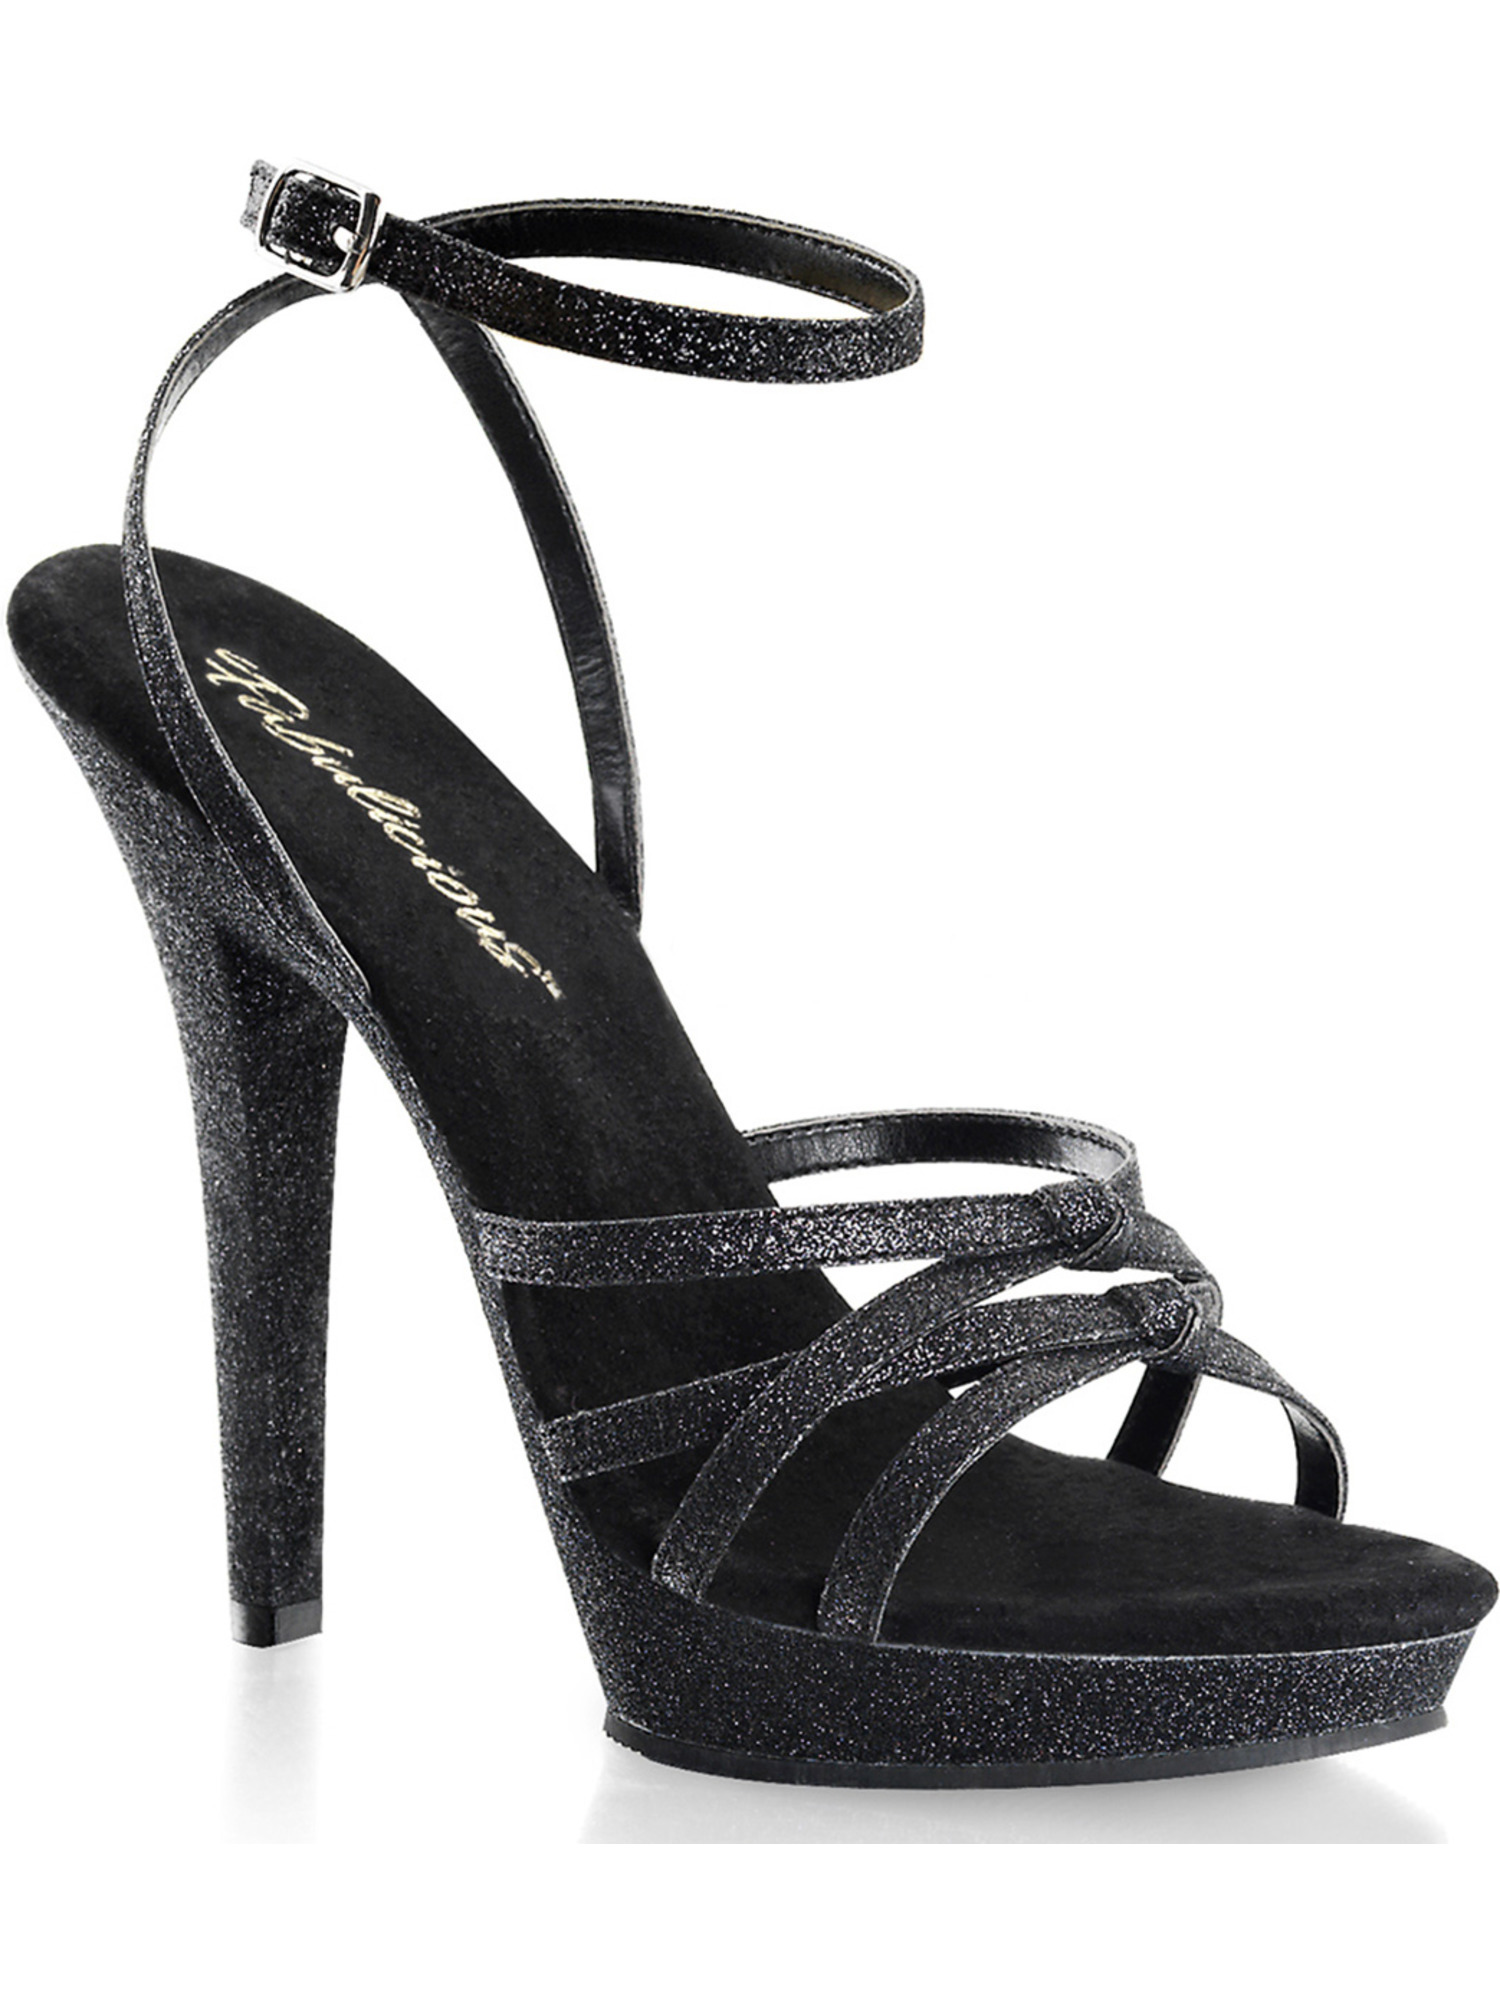 Womens Black Glitter Strappy Sandals Shoes with 5 Inch ...